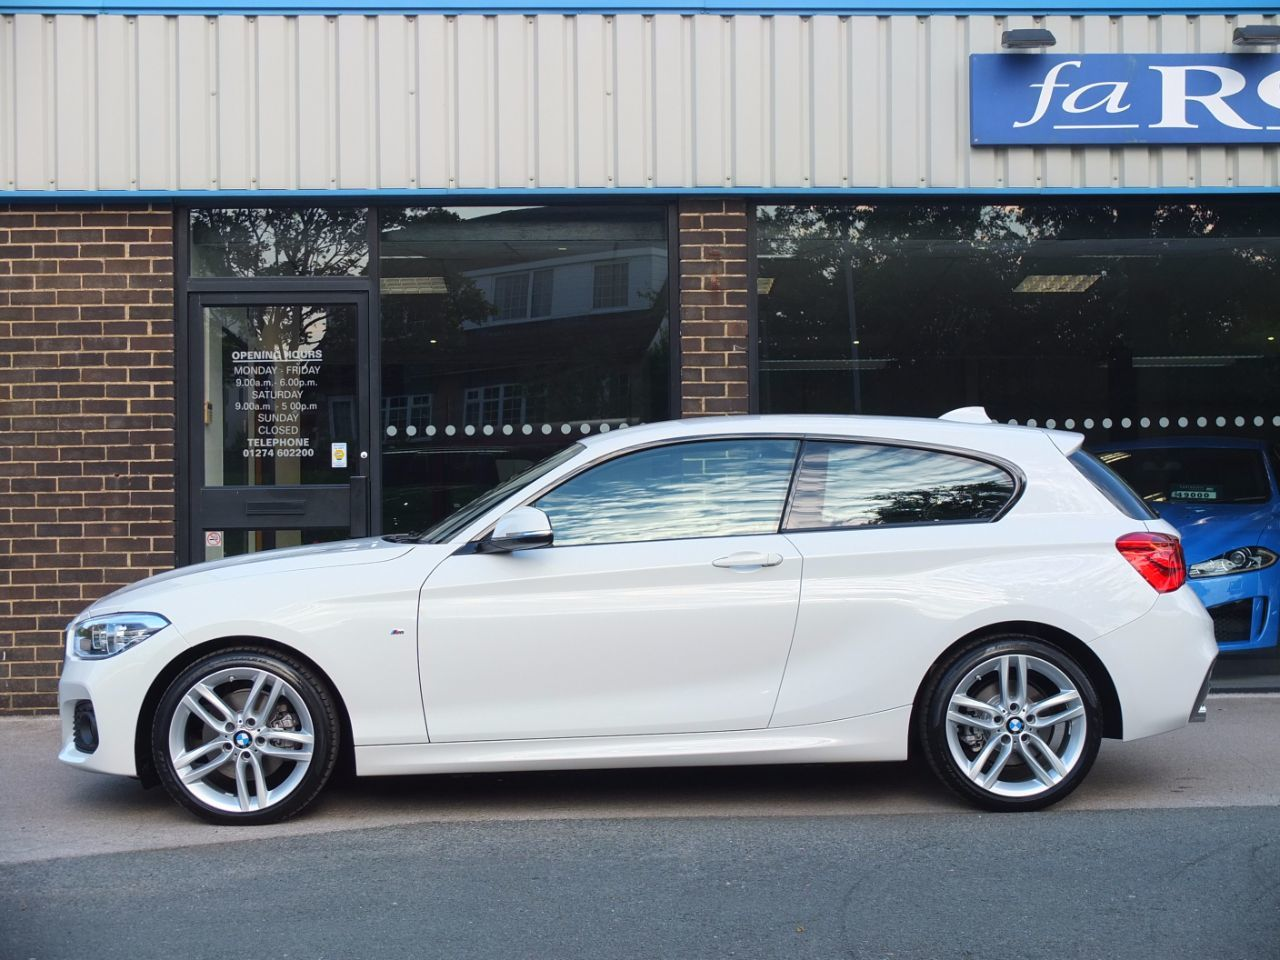 BMW 1 Series 2.0 125d M Sport 3 door Auto +++Spec Hatchback Diesel Alpine White